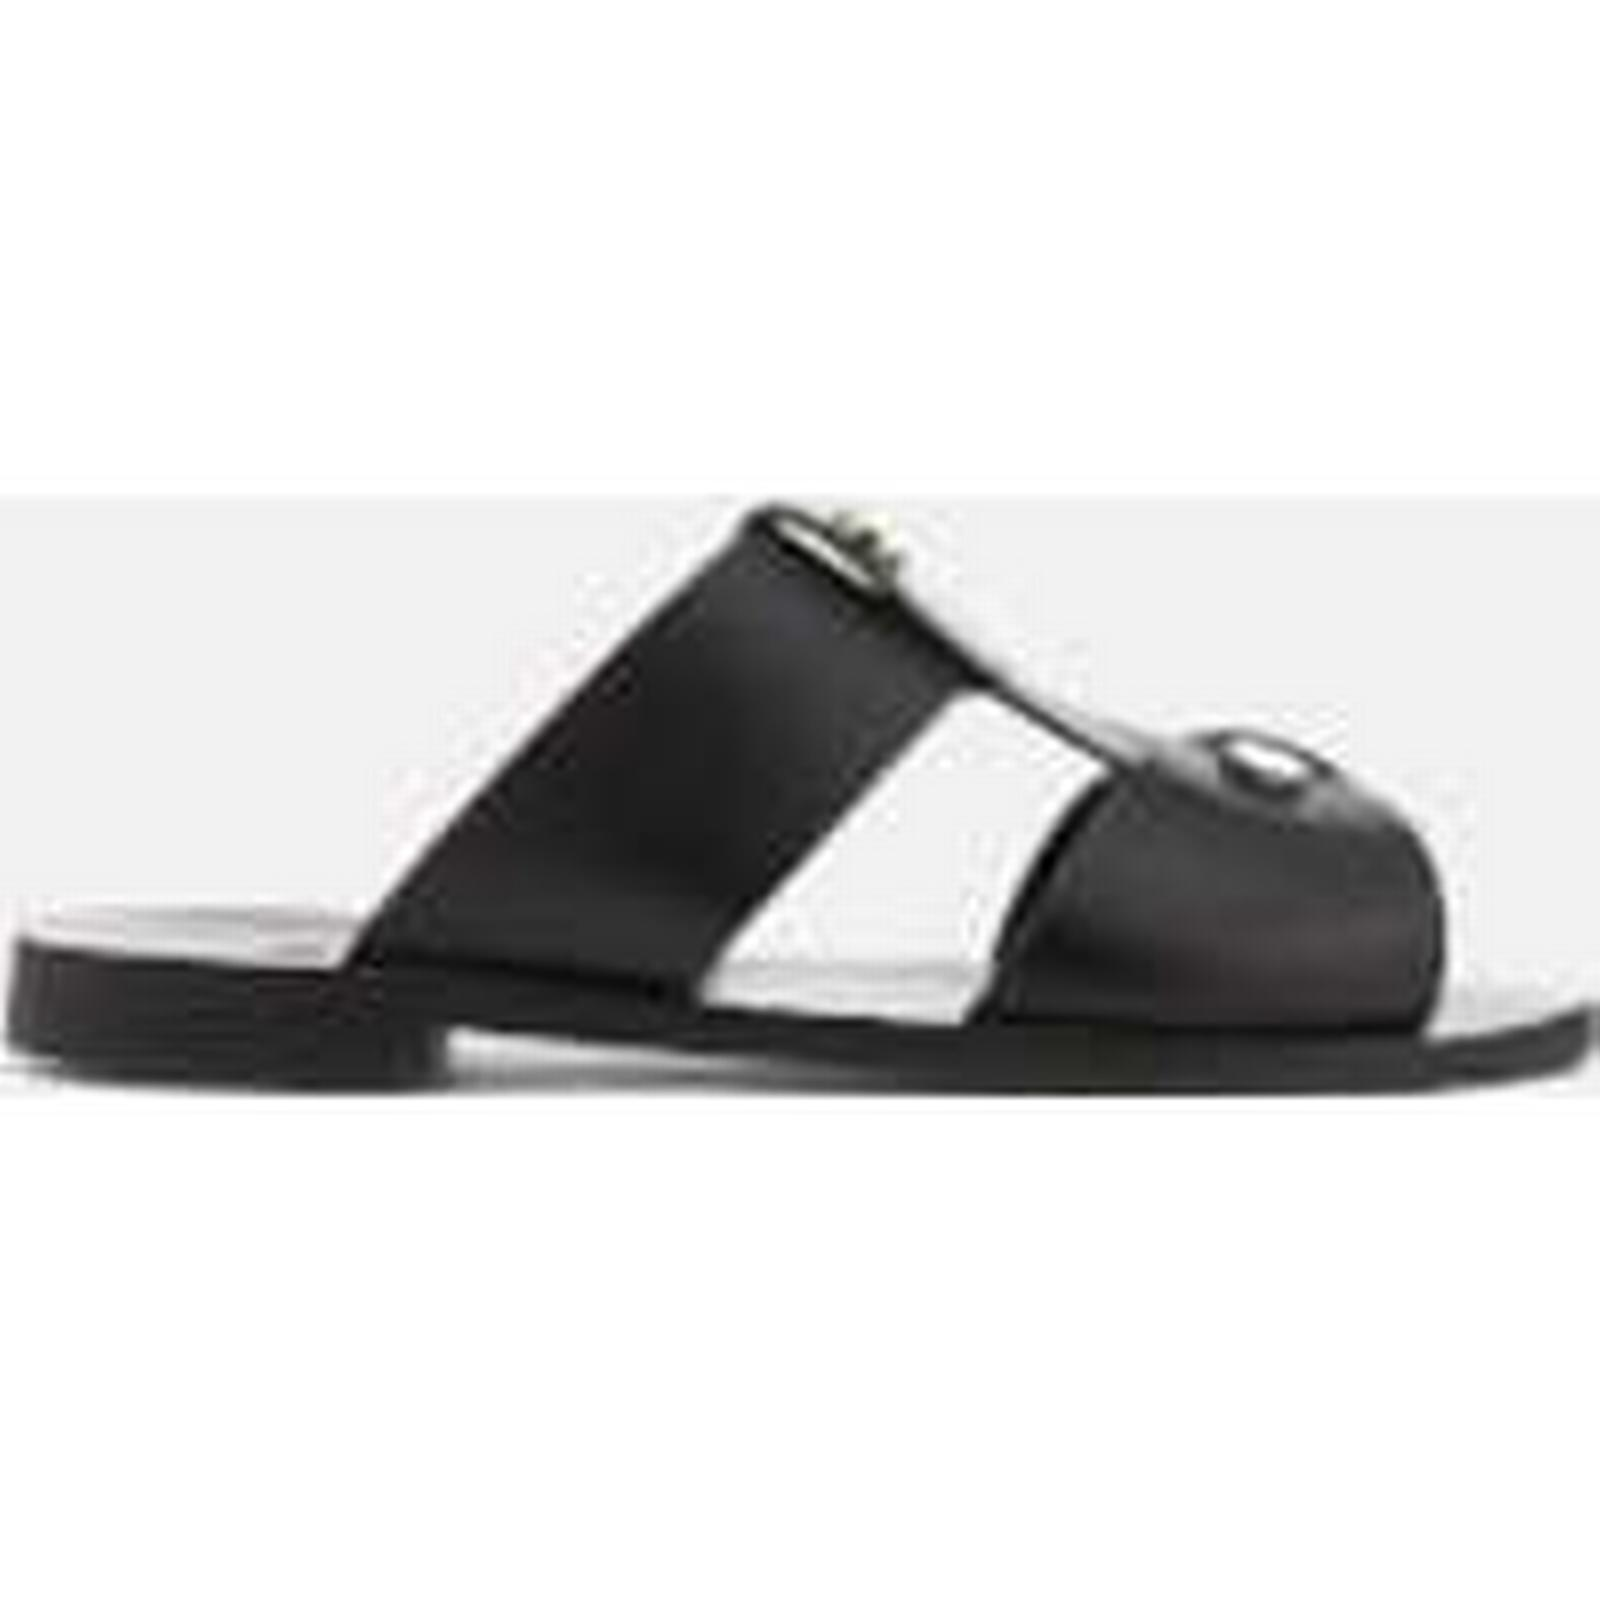 Hudson Double London Women's Aponi Leather Double Hudson Strap Sandals - Black a3e6e0